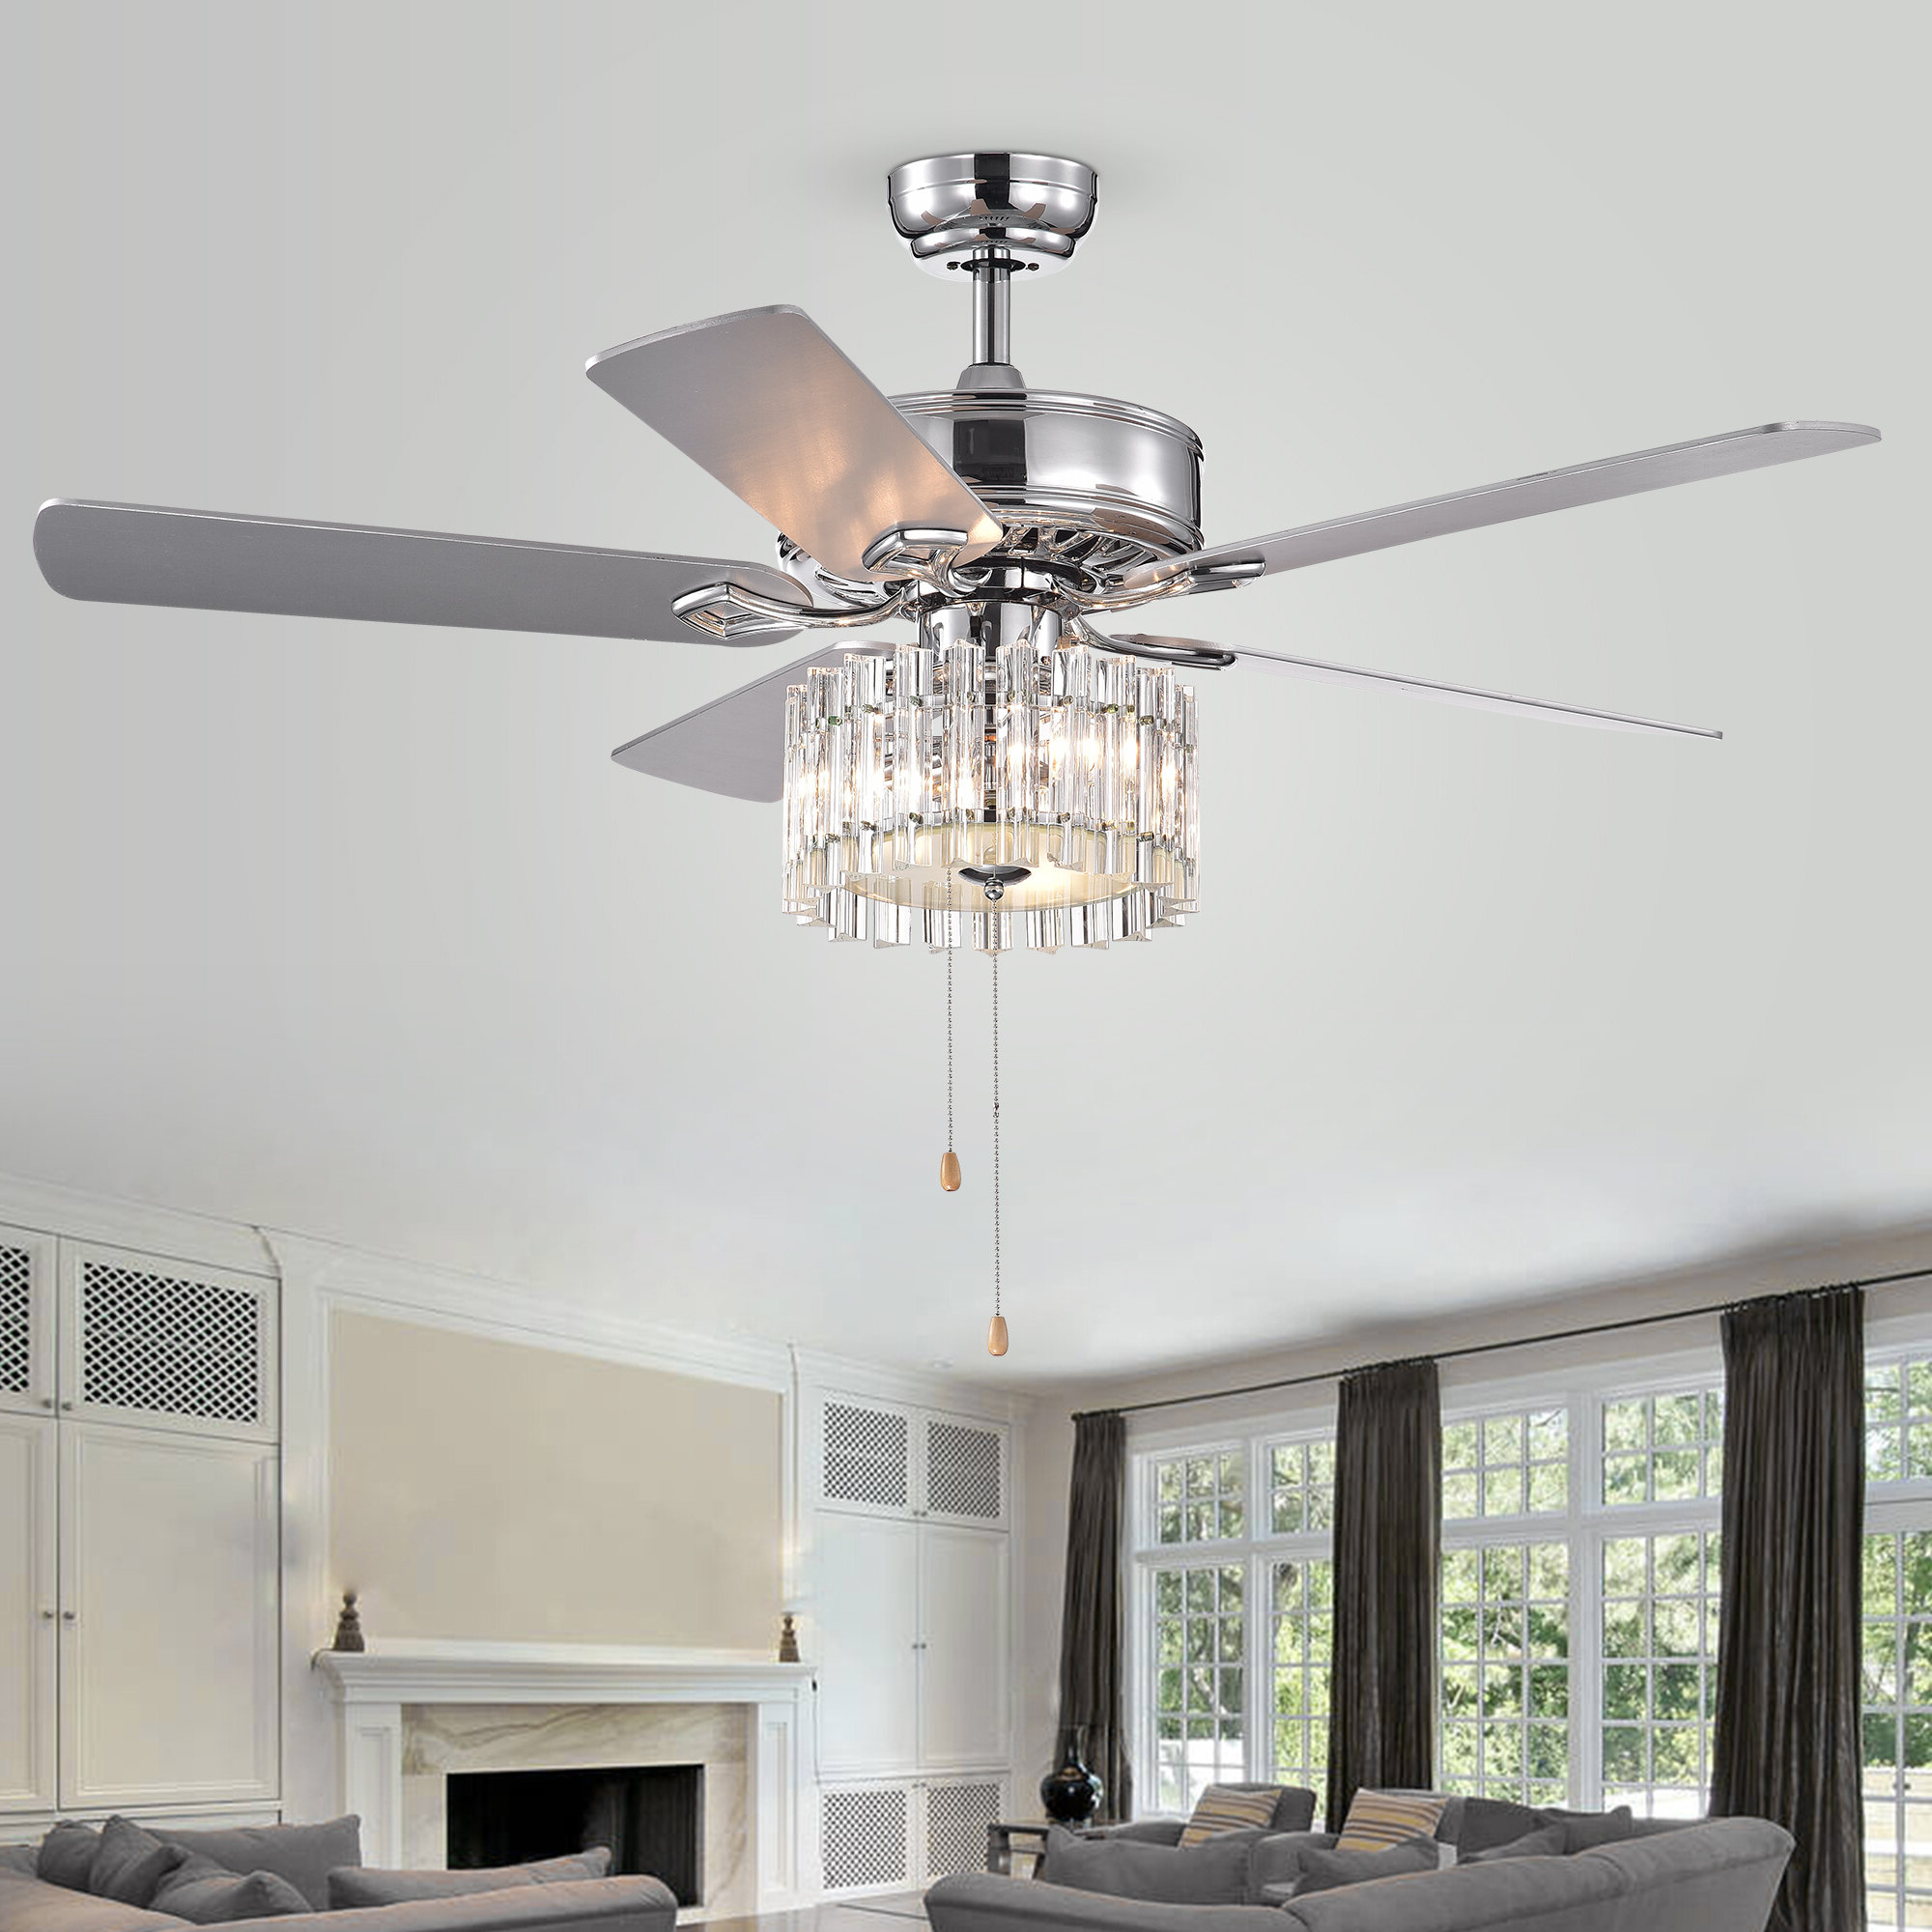 Njie Caged Crystal 5 Blade Ceiling Fans With Regard To Current Clark 5 Blade Ceiling Fan, Light Kit Included (View 20 of 20)